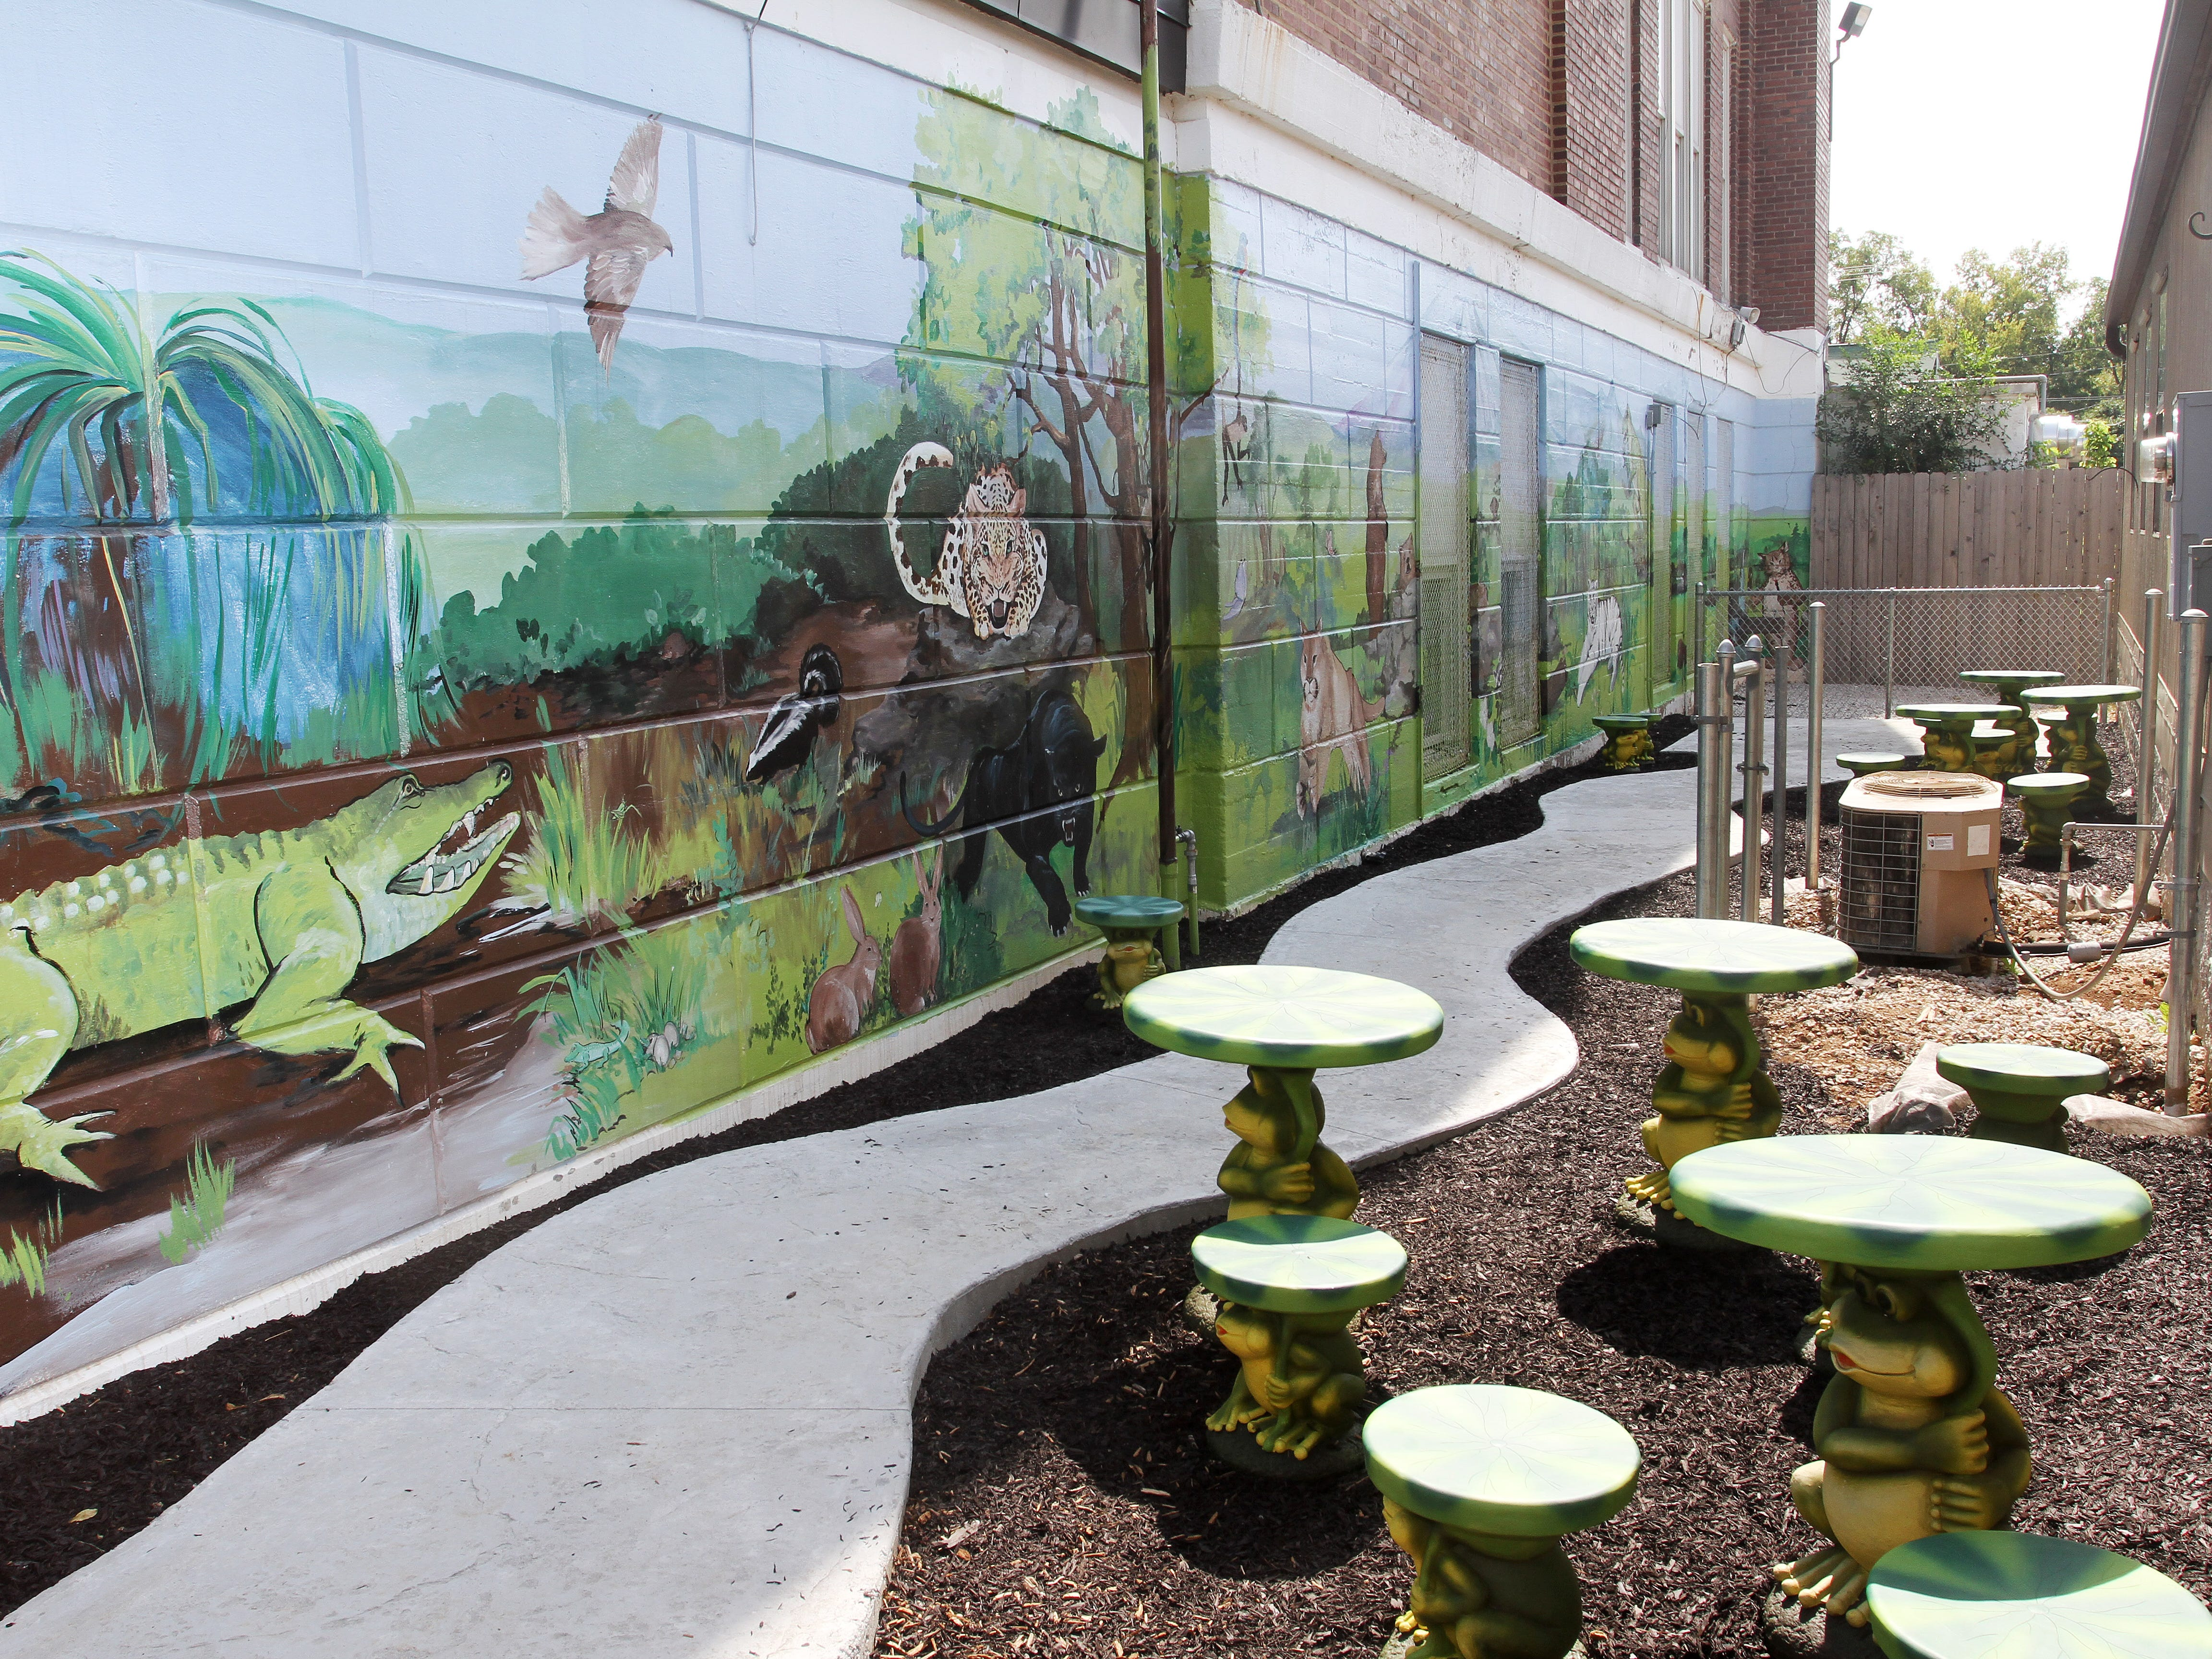 The outdoor reading area at Boyd Elementary School is one way the school has made creative use of limited space.